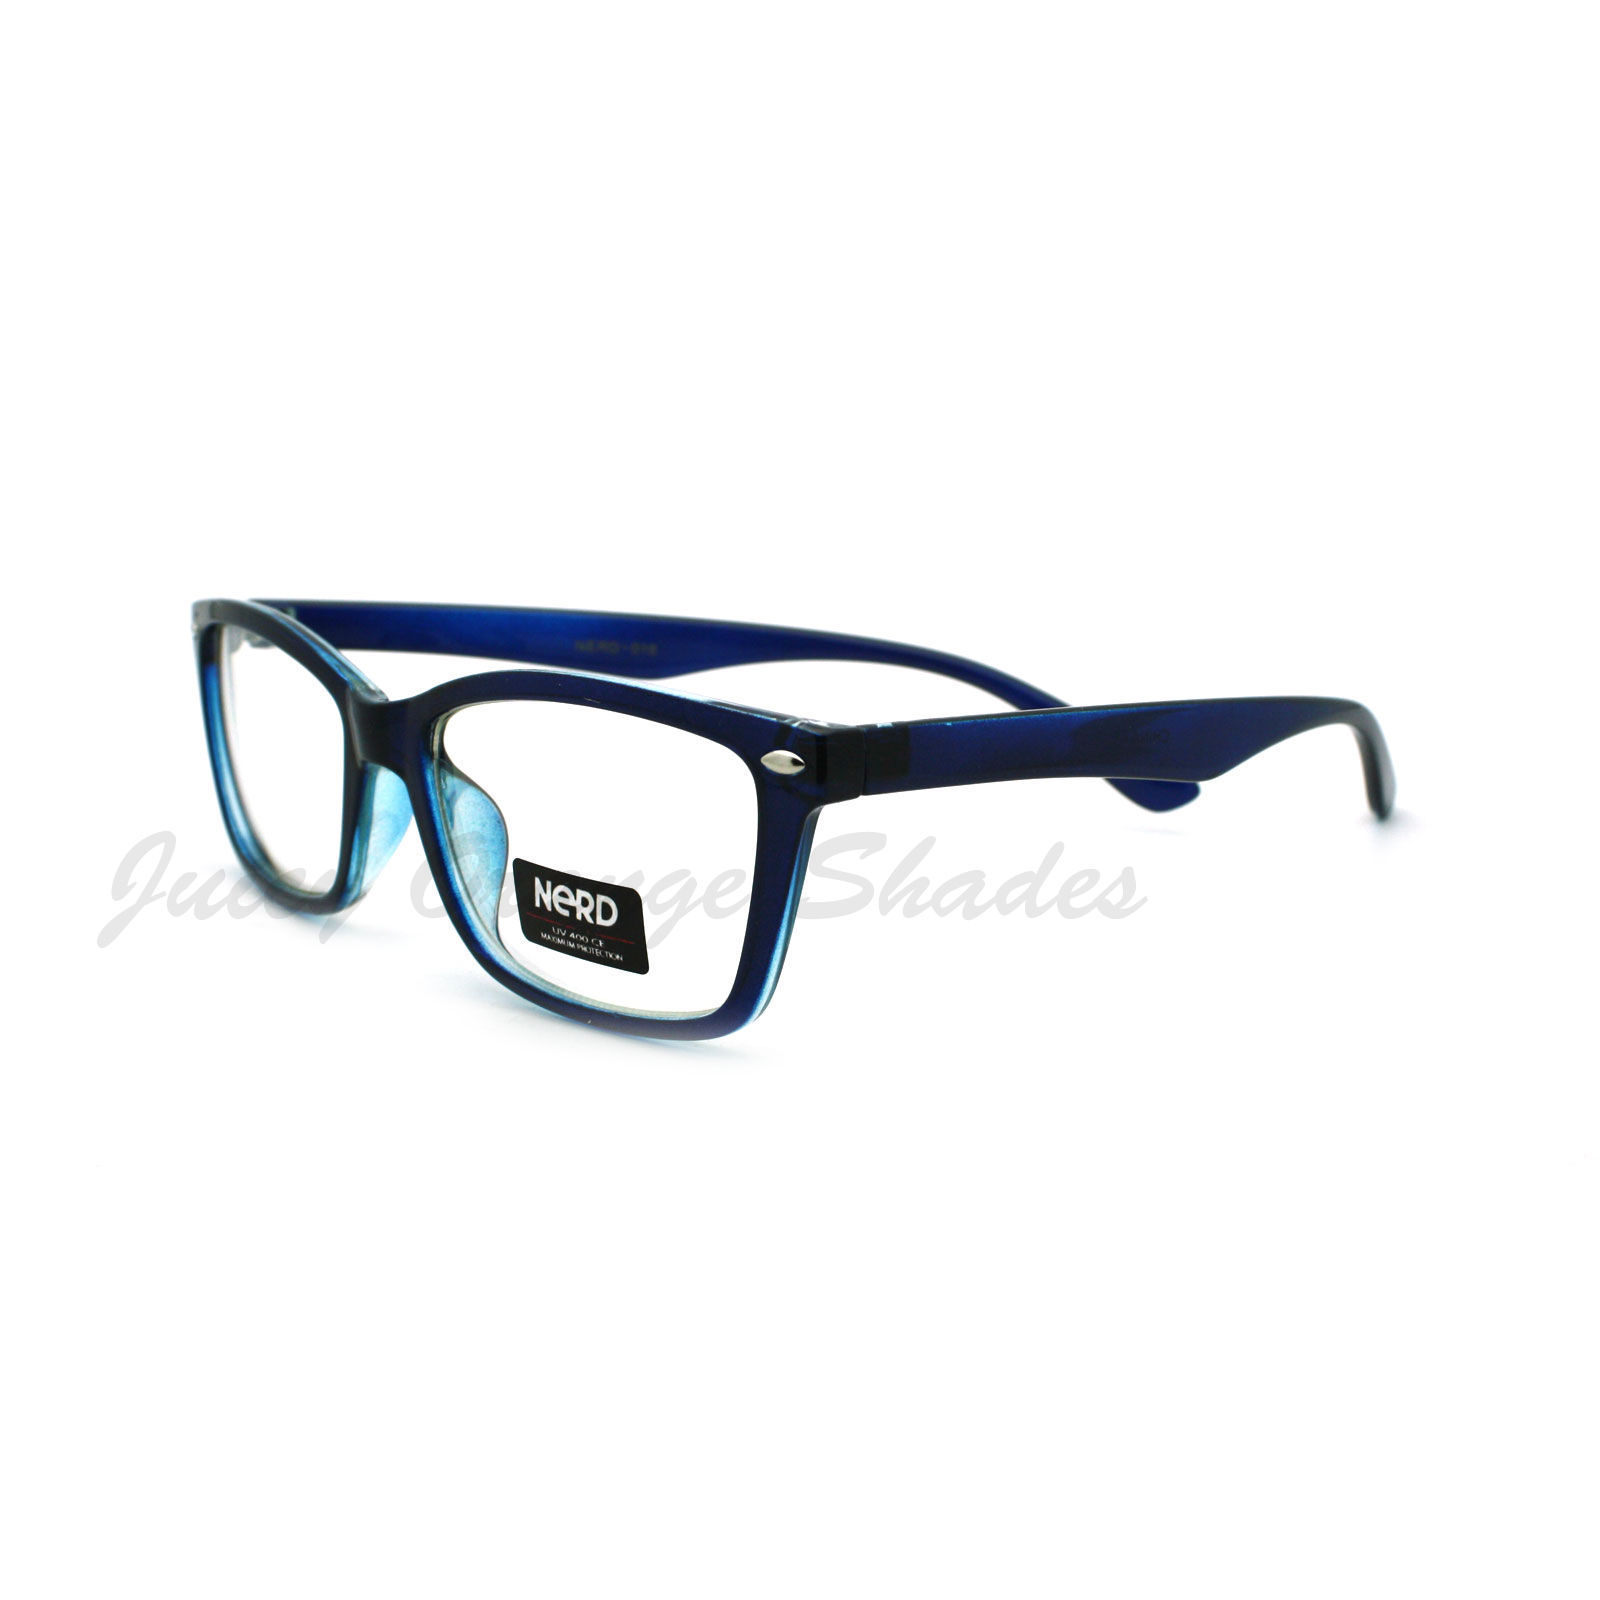 Clear Lens Optical Frame Eyeglasses Designer Rectangular Glasses